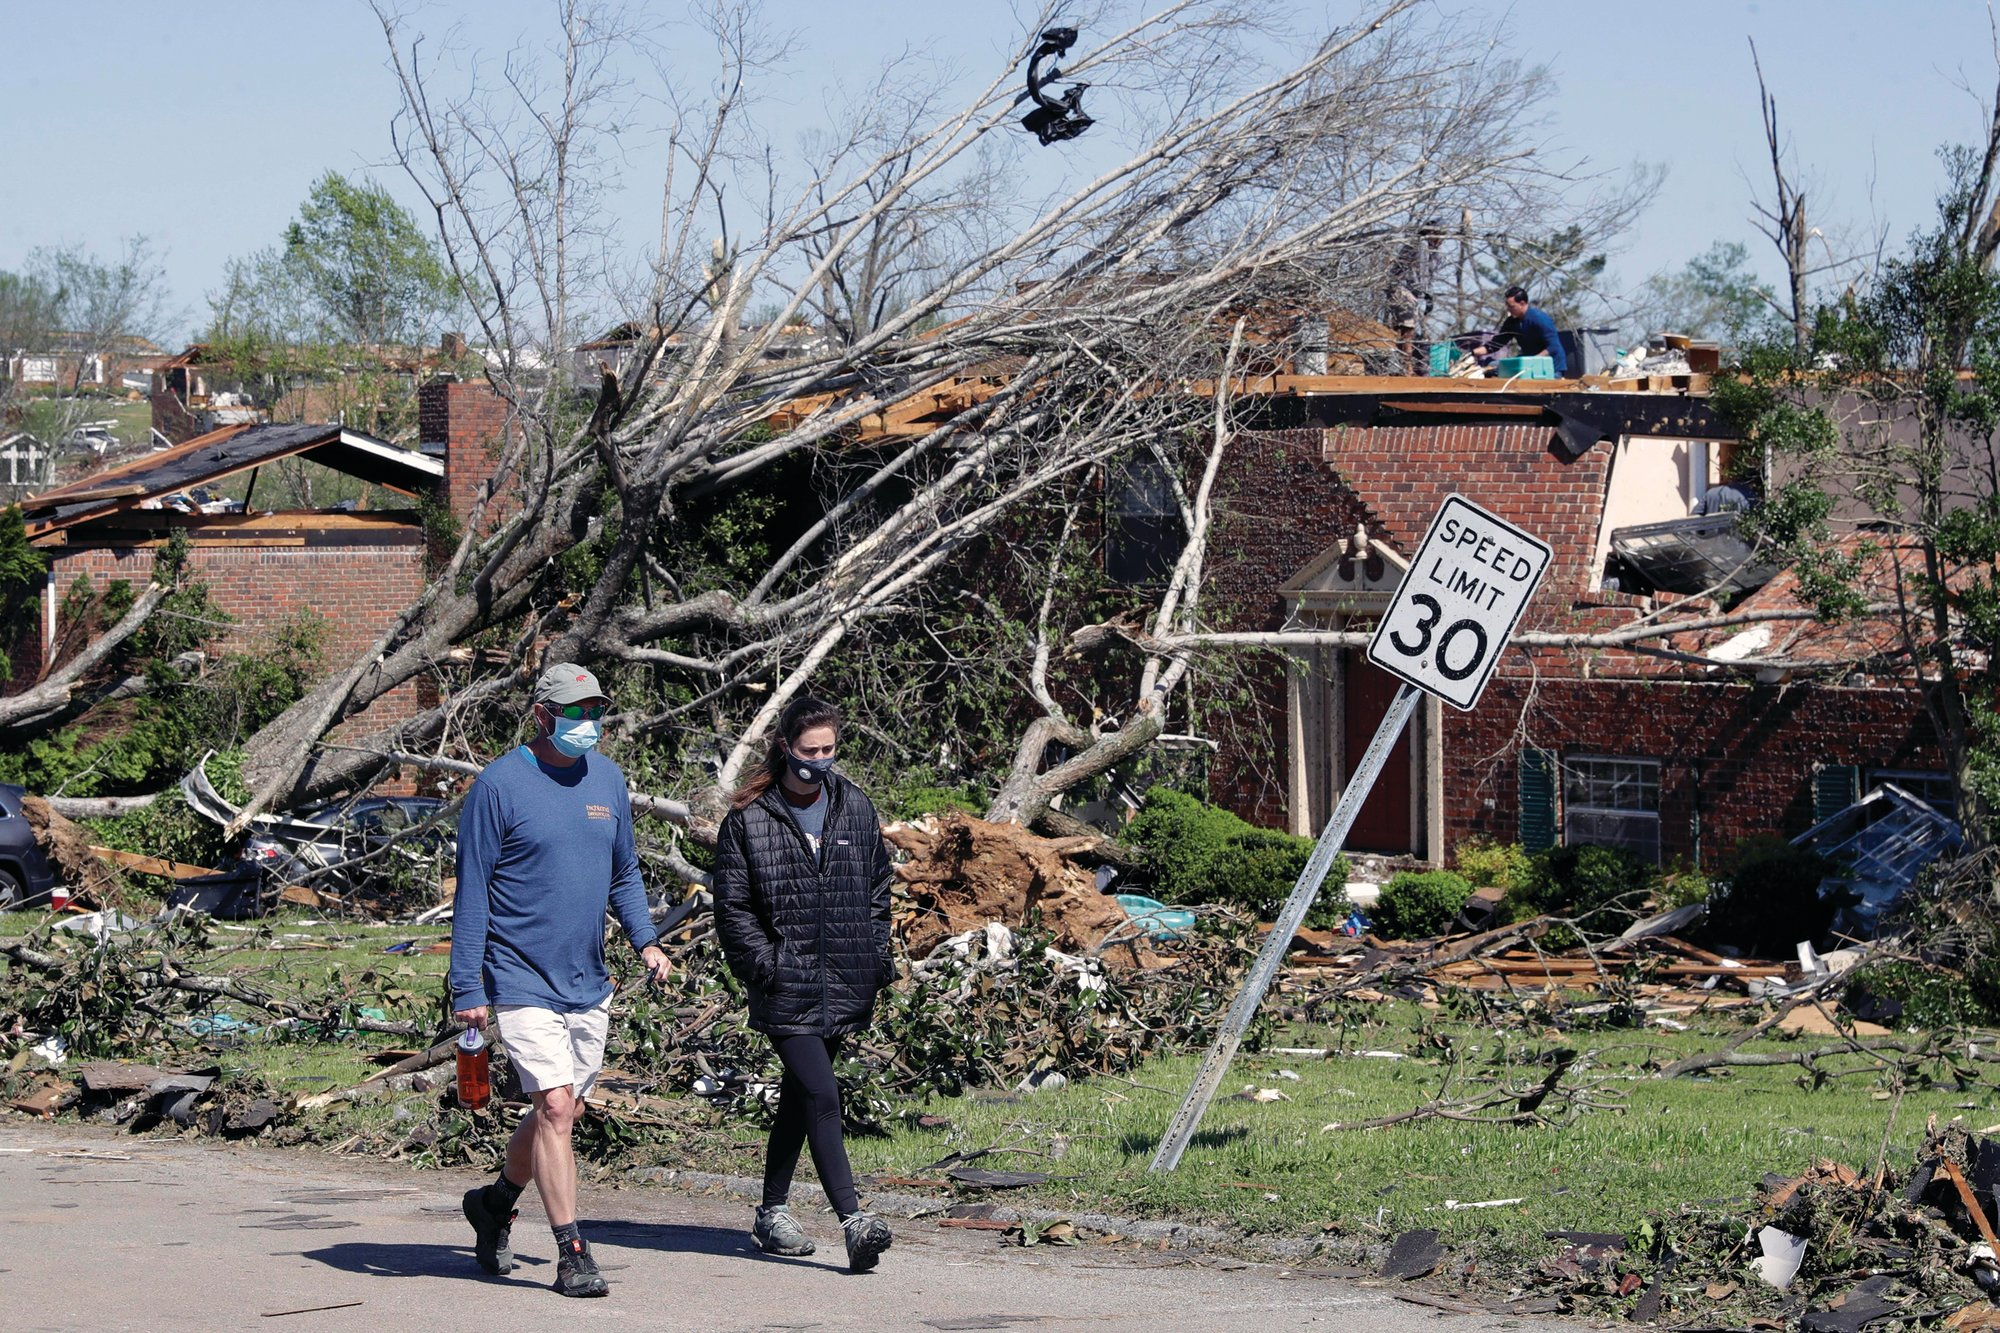 People walk up a street of damaged homes Tuesday, April 14, 2020, in Chattanooga, Tenn. Tornadoes went through the area Sunday, April 12.